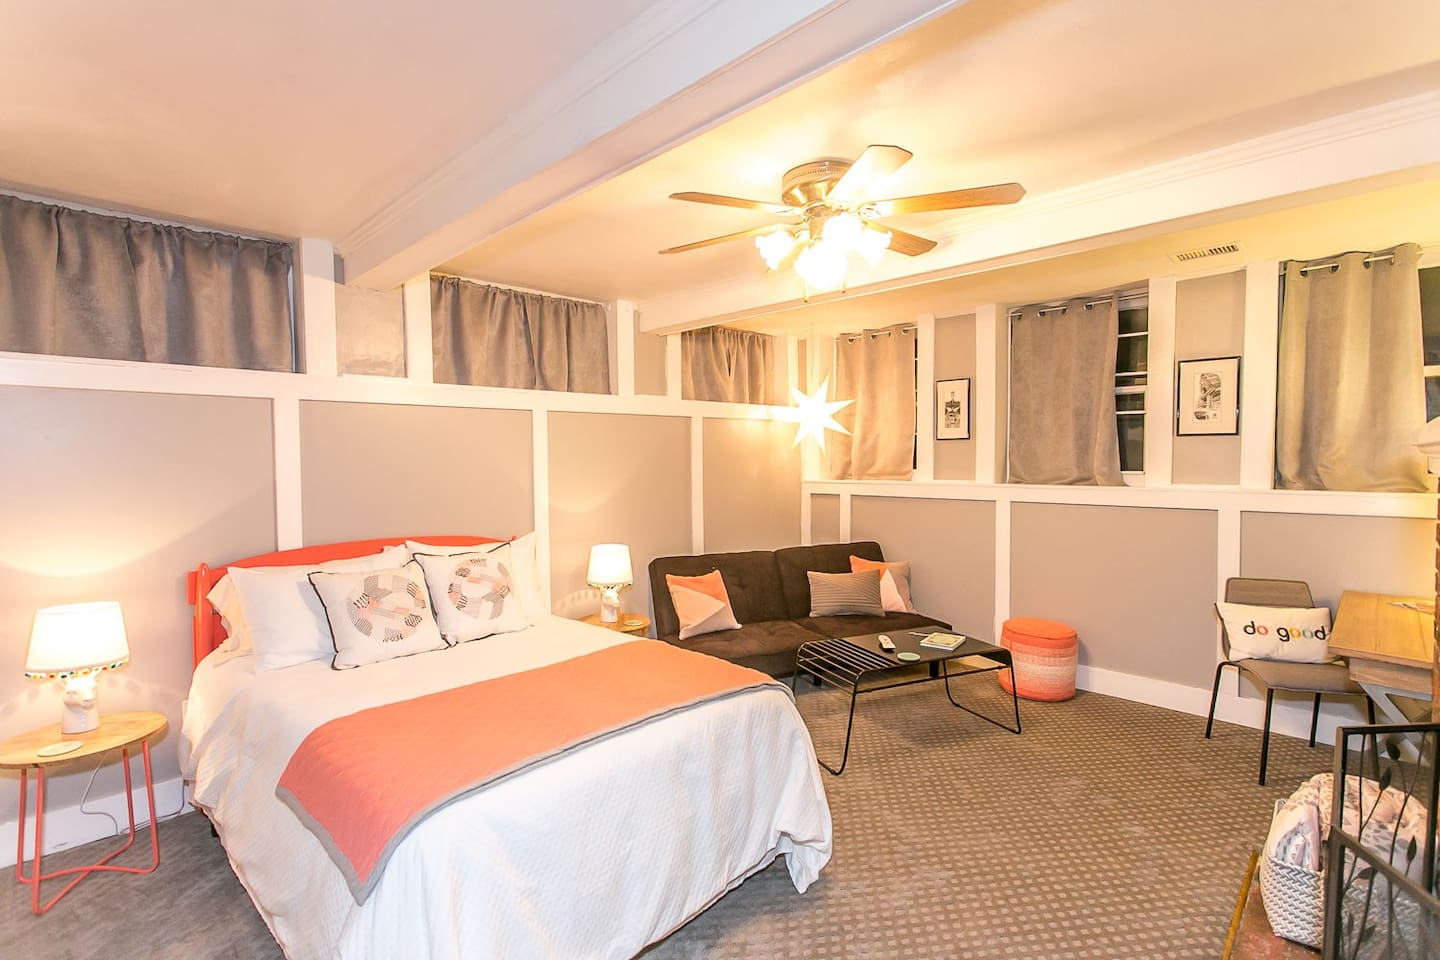 Bedroom/Living Room Area with a Full Size Bed and Futon